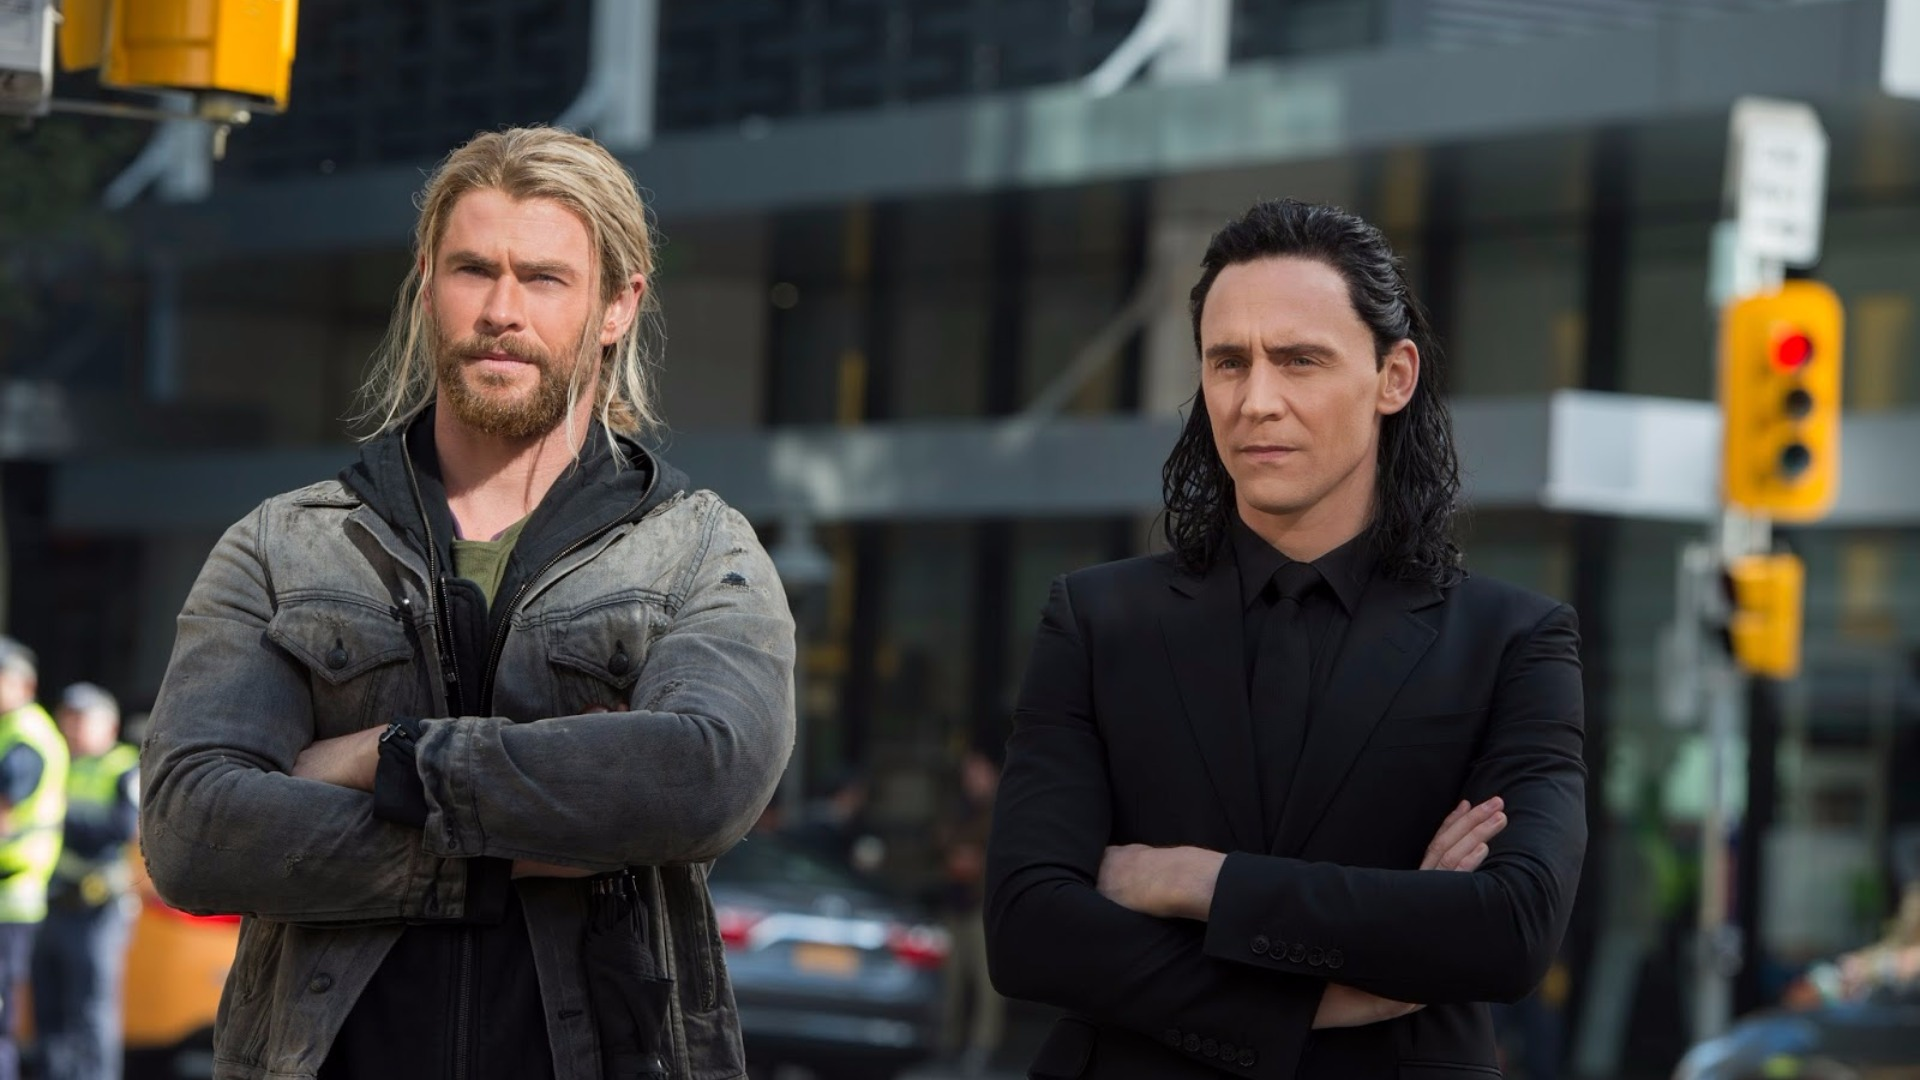 Thor Ragnarok Loki Wallpaper Hd Major Thor Ragnarok Spoiler Dropped During Interview Daily Superheroes Your Daily Dose Of Superheroes News major thor ragnarok spoiler dropped